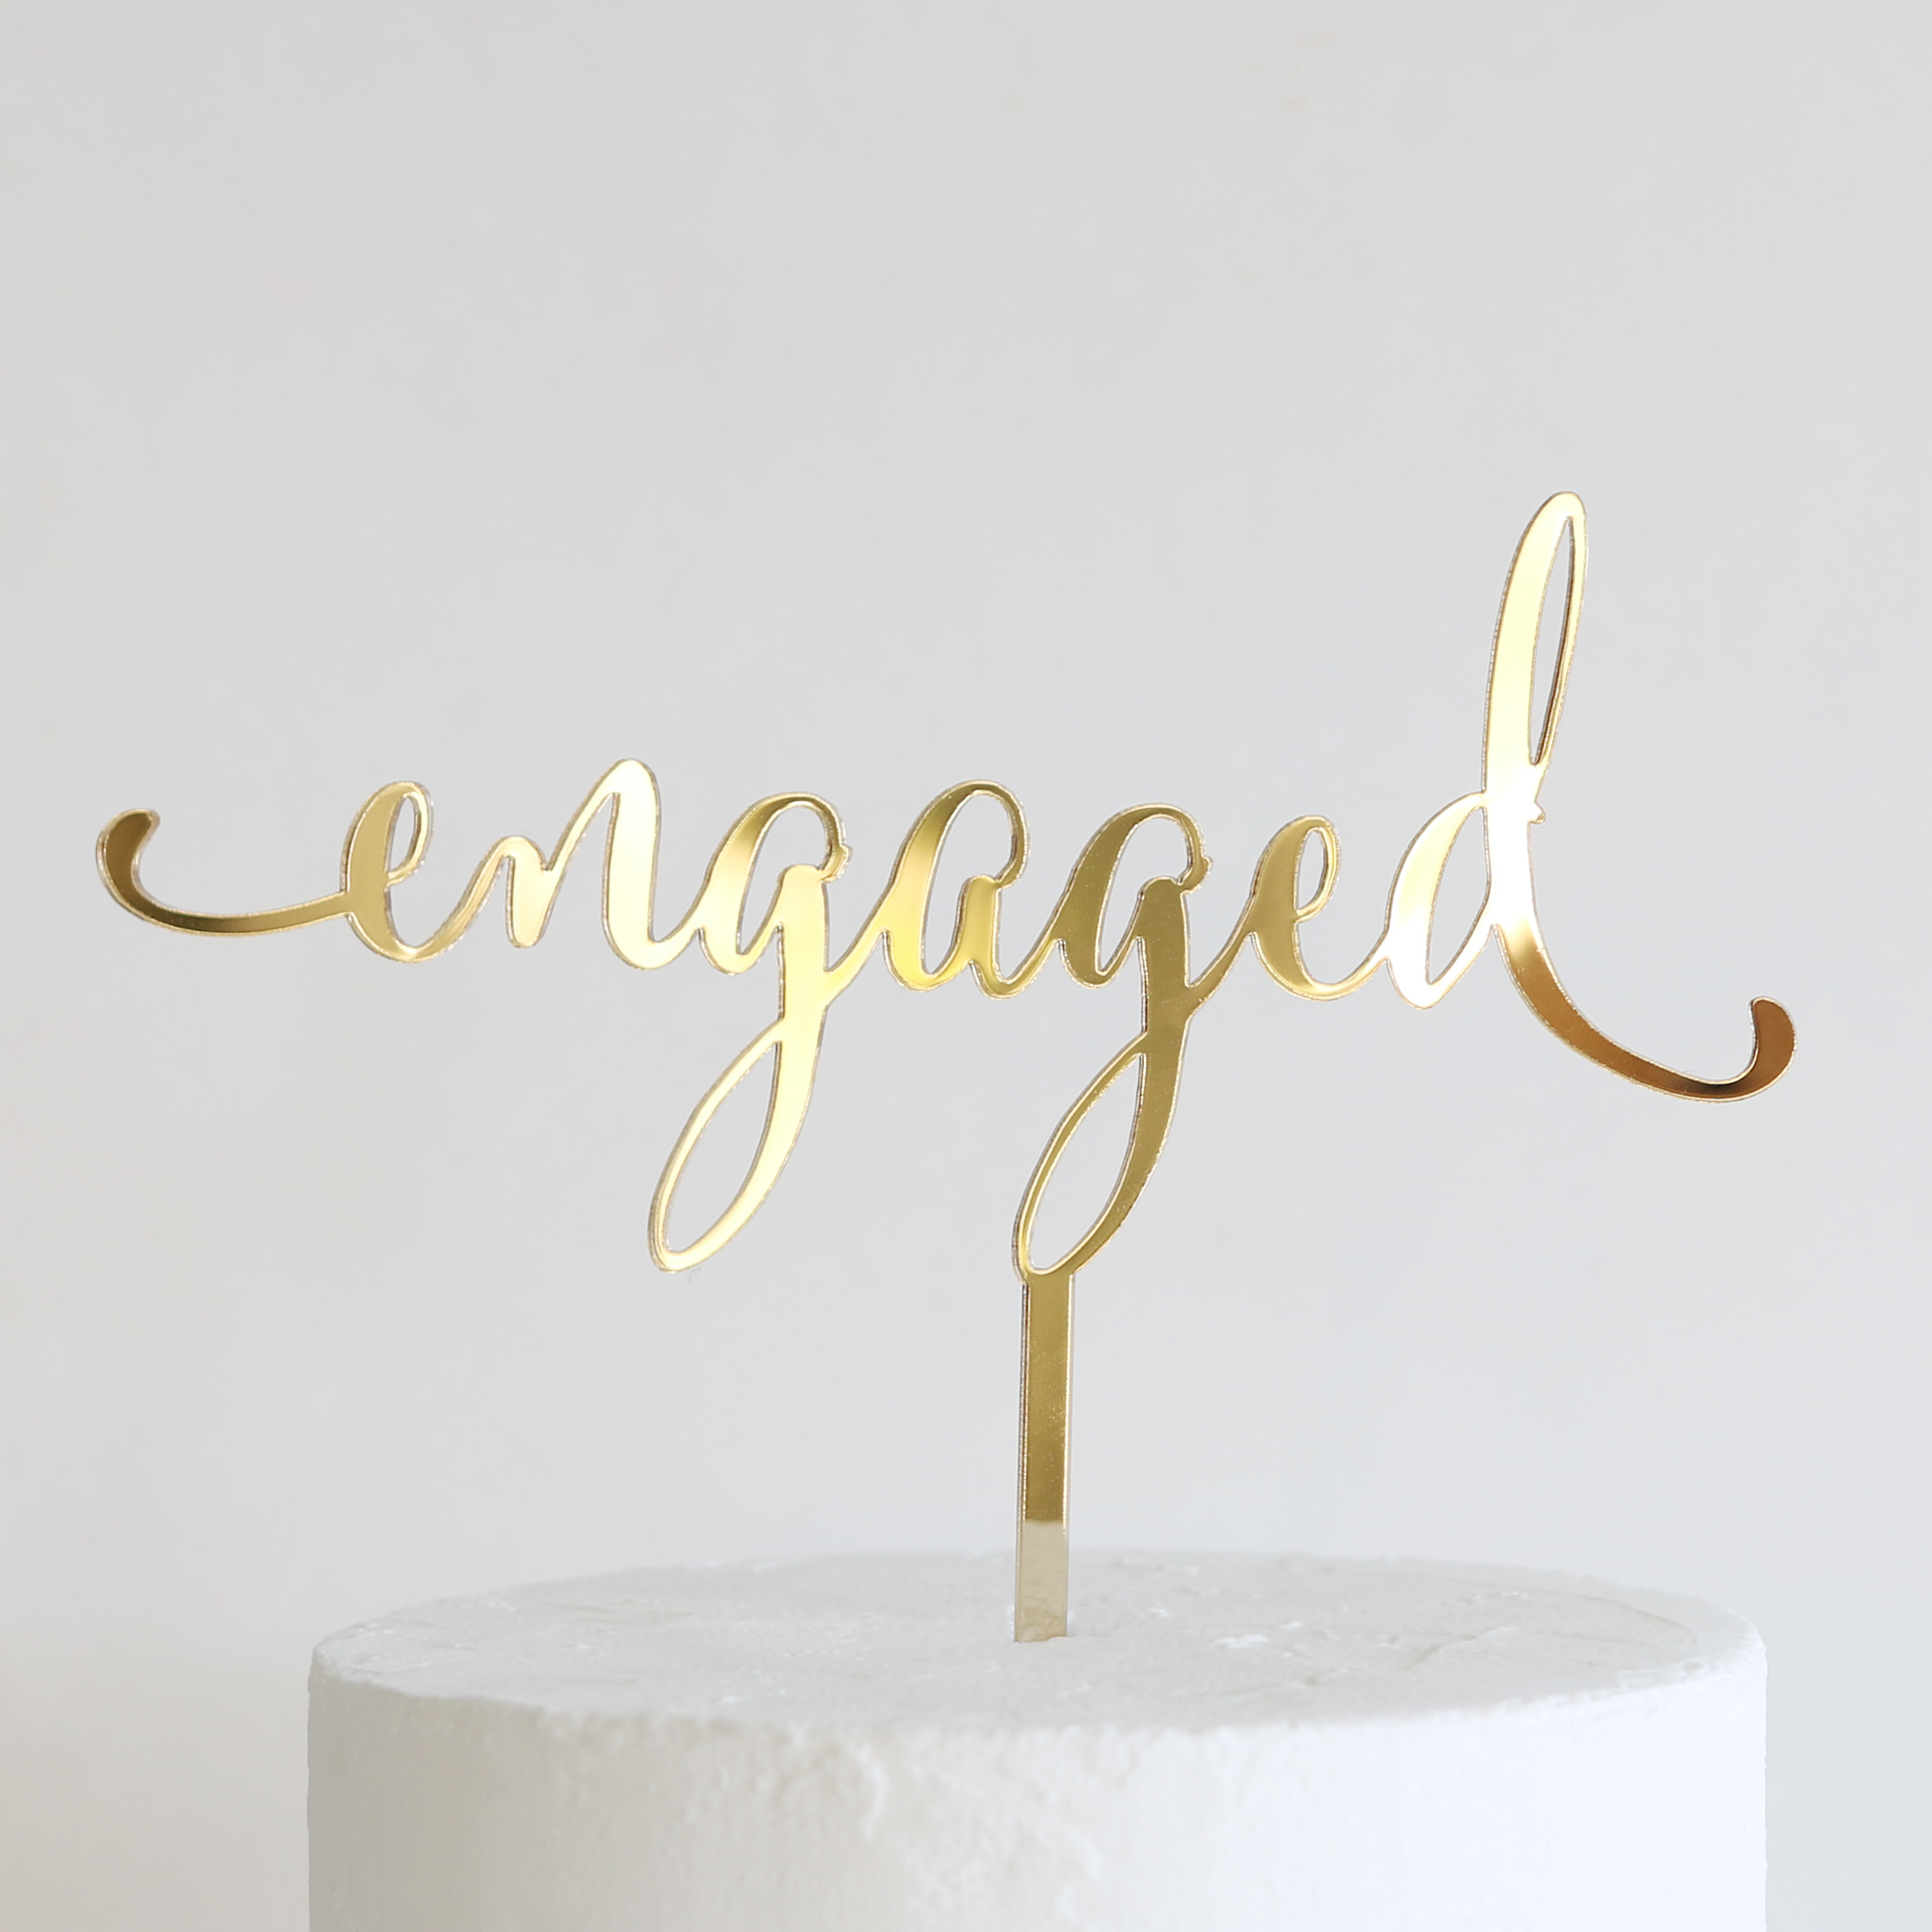 Clear Acrylic Cake Topper